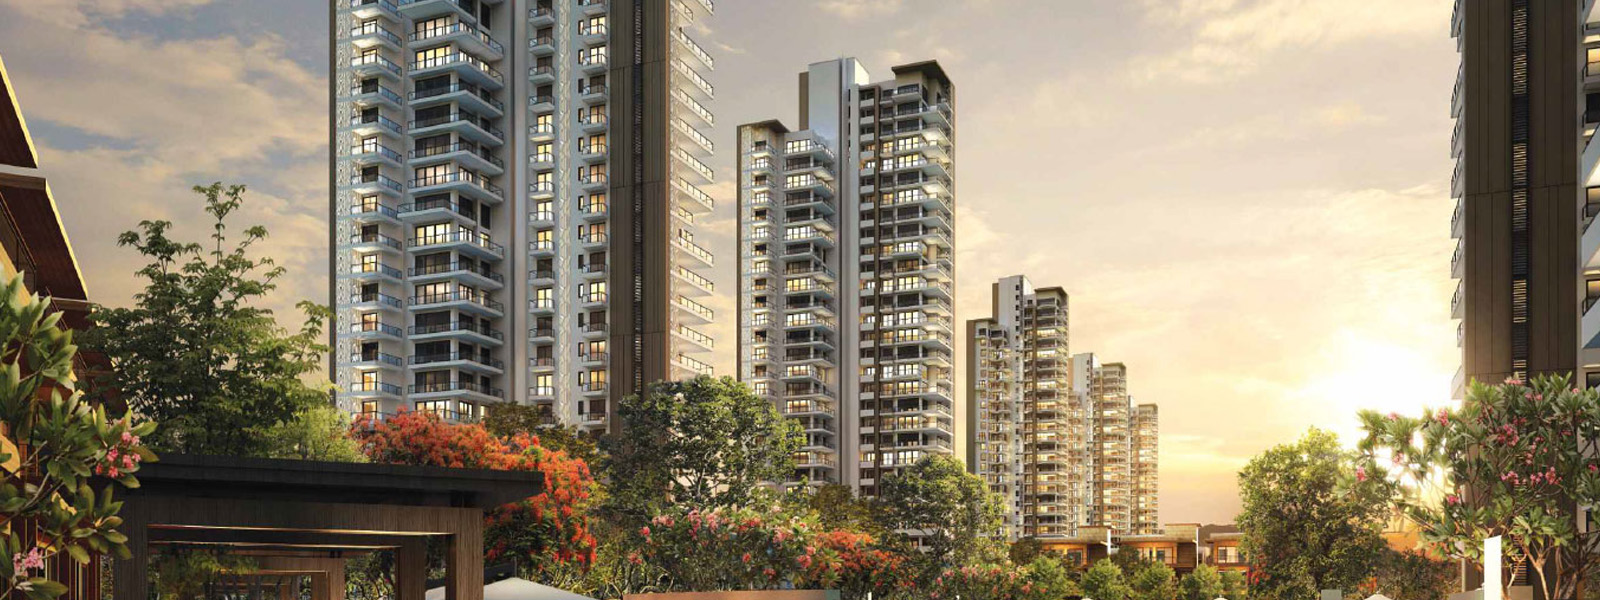 Puri Emerald Bay Secor 104 Gurgaon